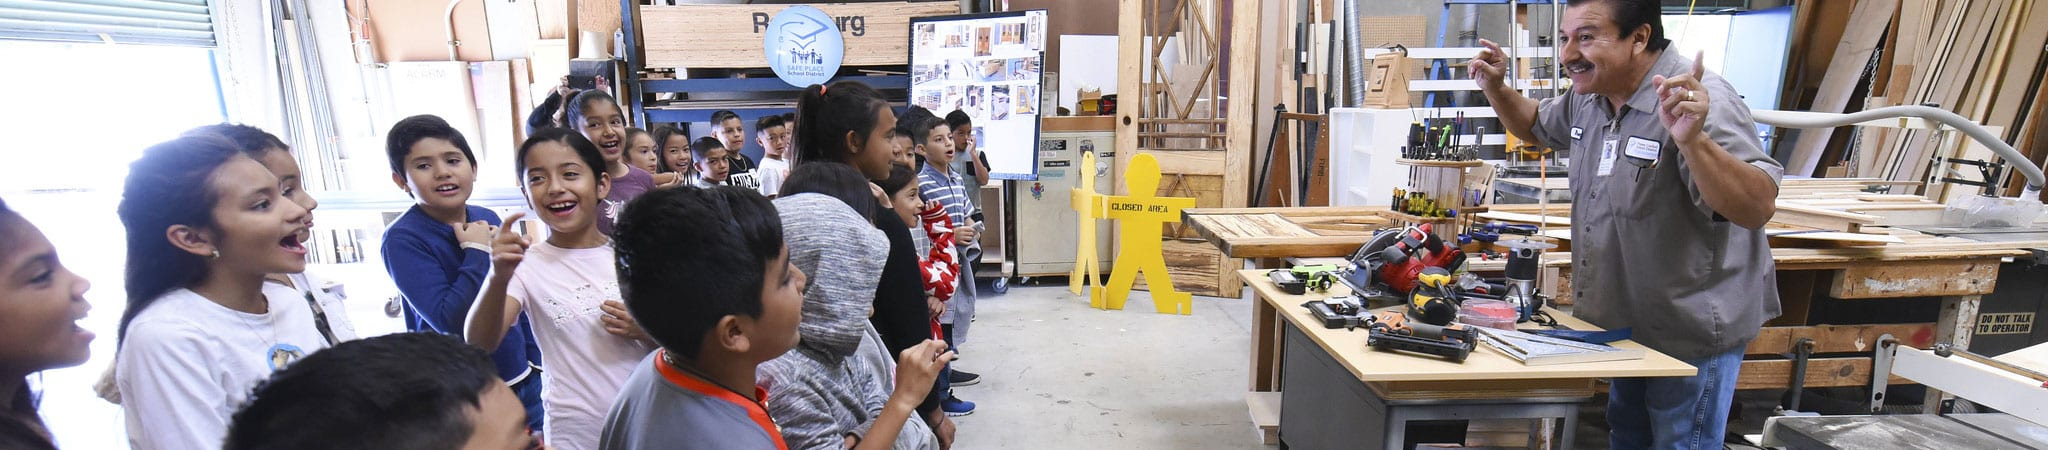 A Maintenance & Operations employee shows a group of students part of the Maintenance & Operations building.